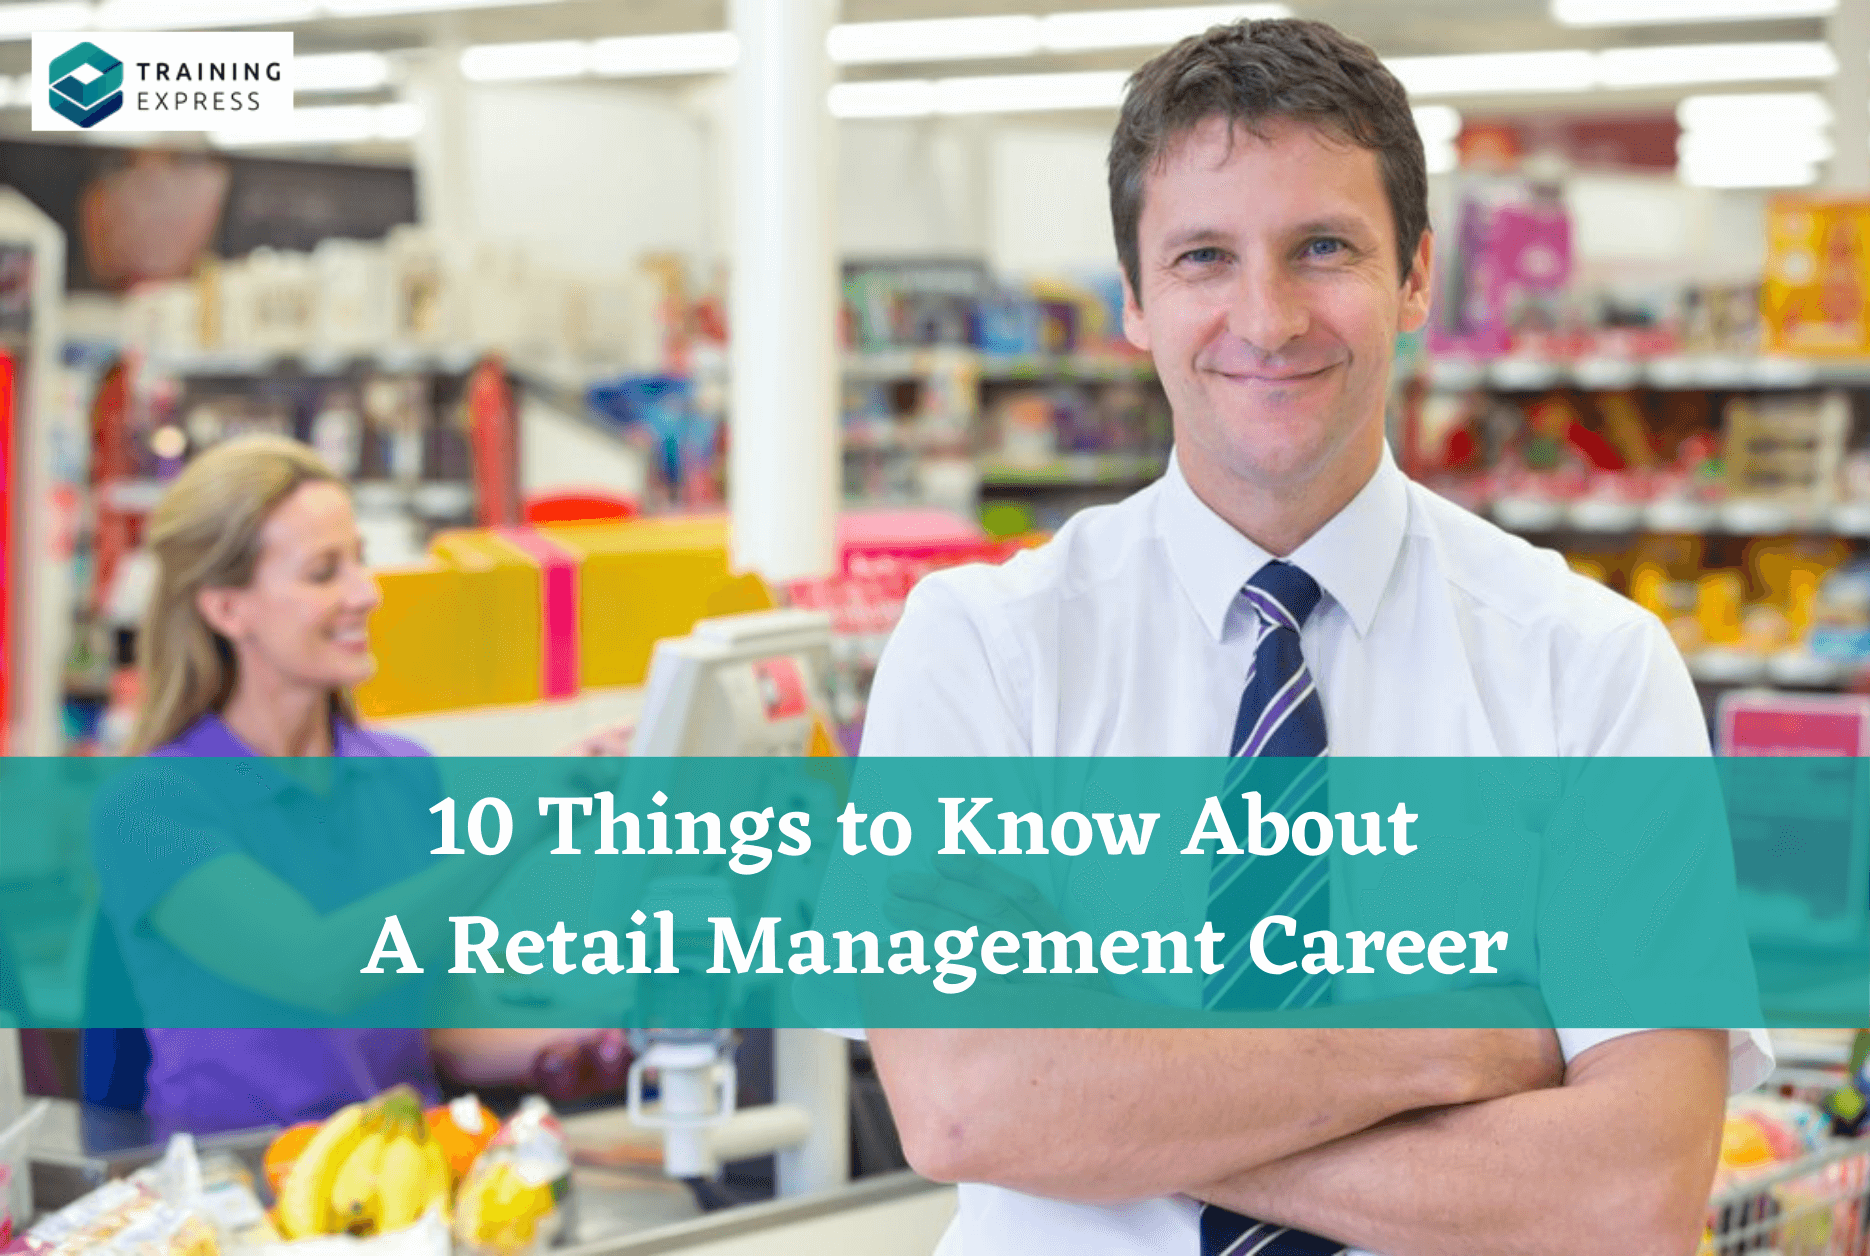 Retail Management Career